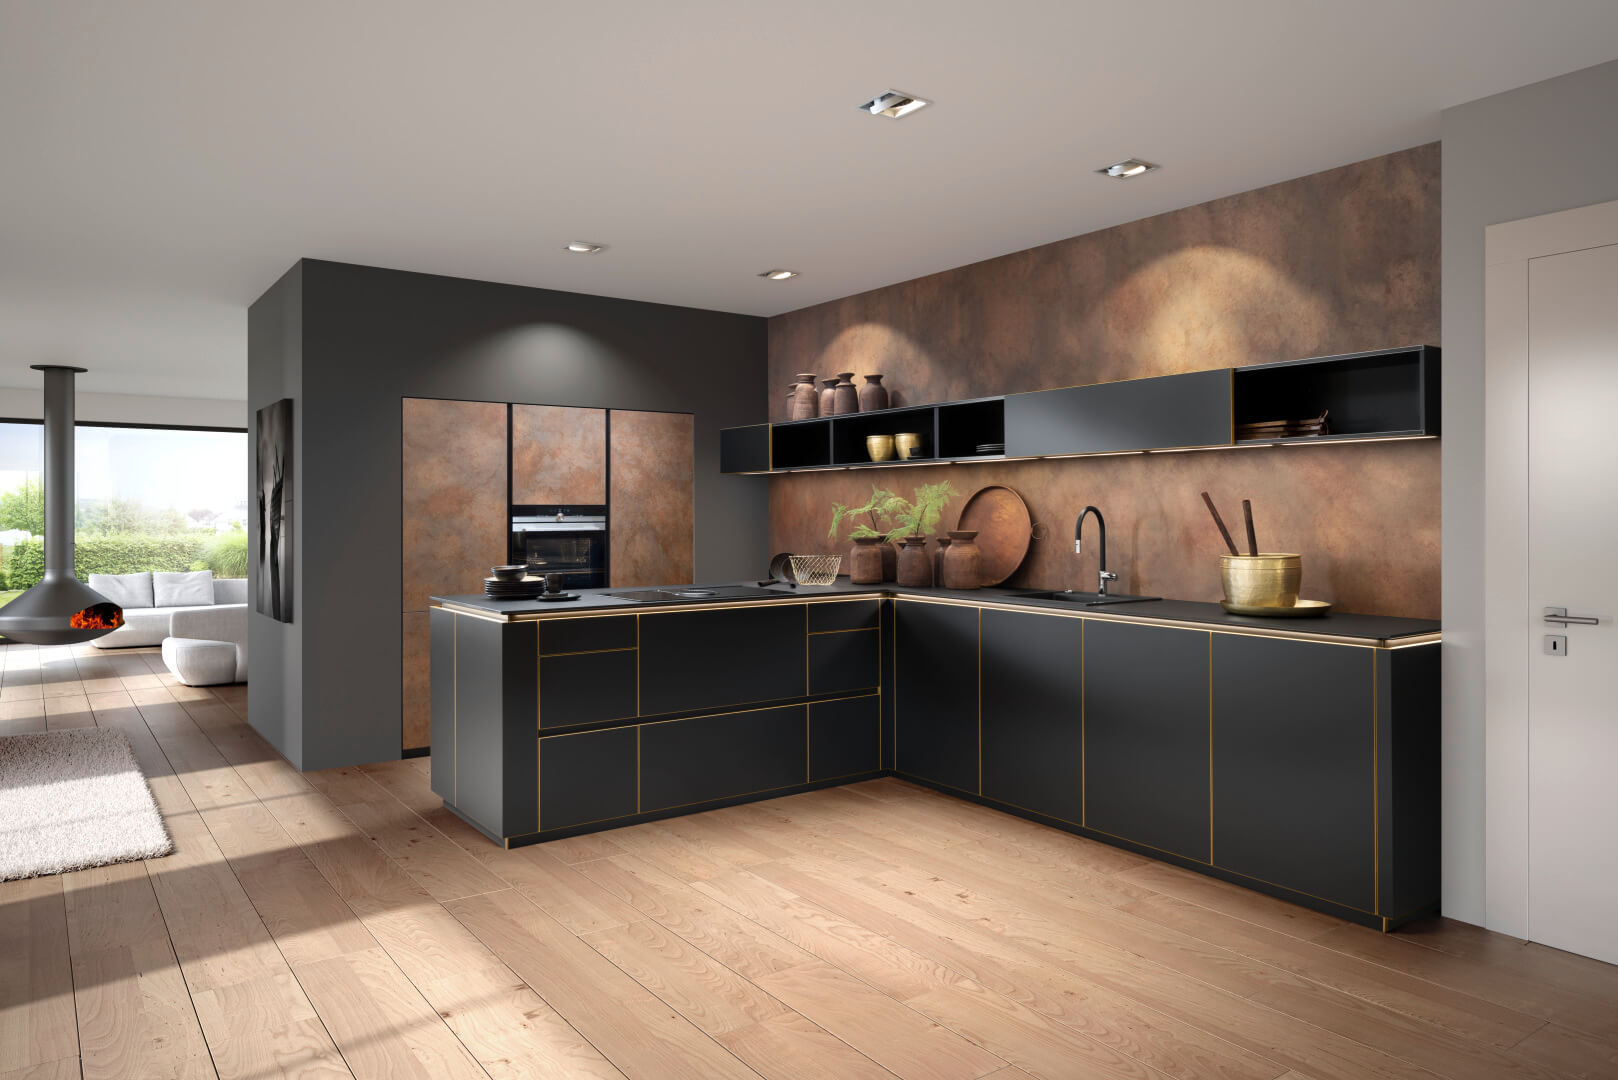 Nolte-Kitchens-Flair-Gallery1